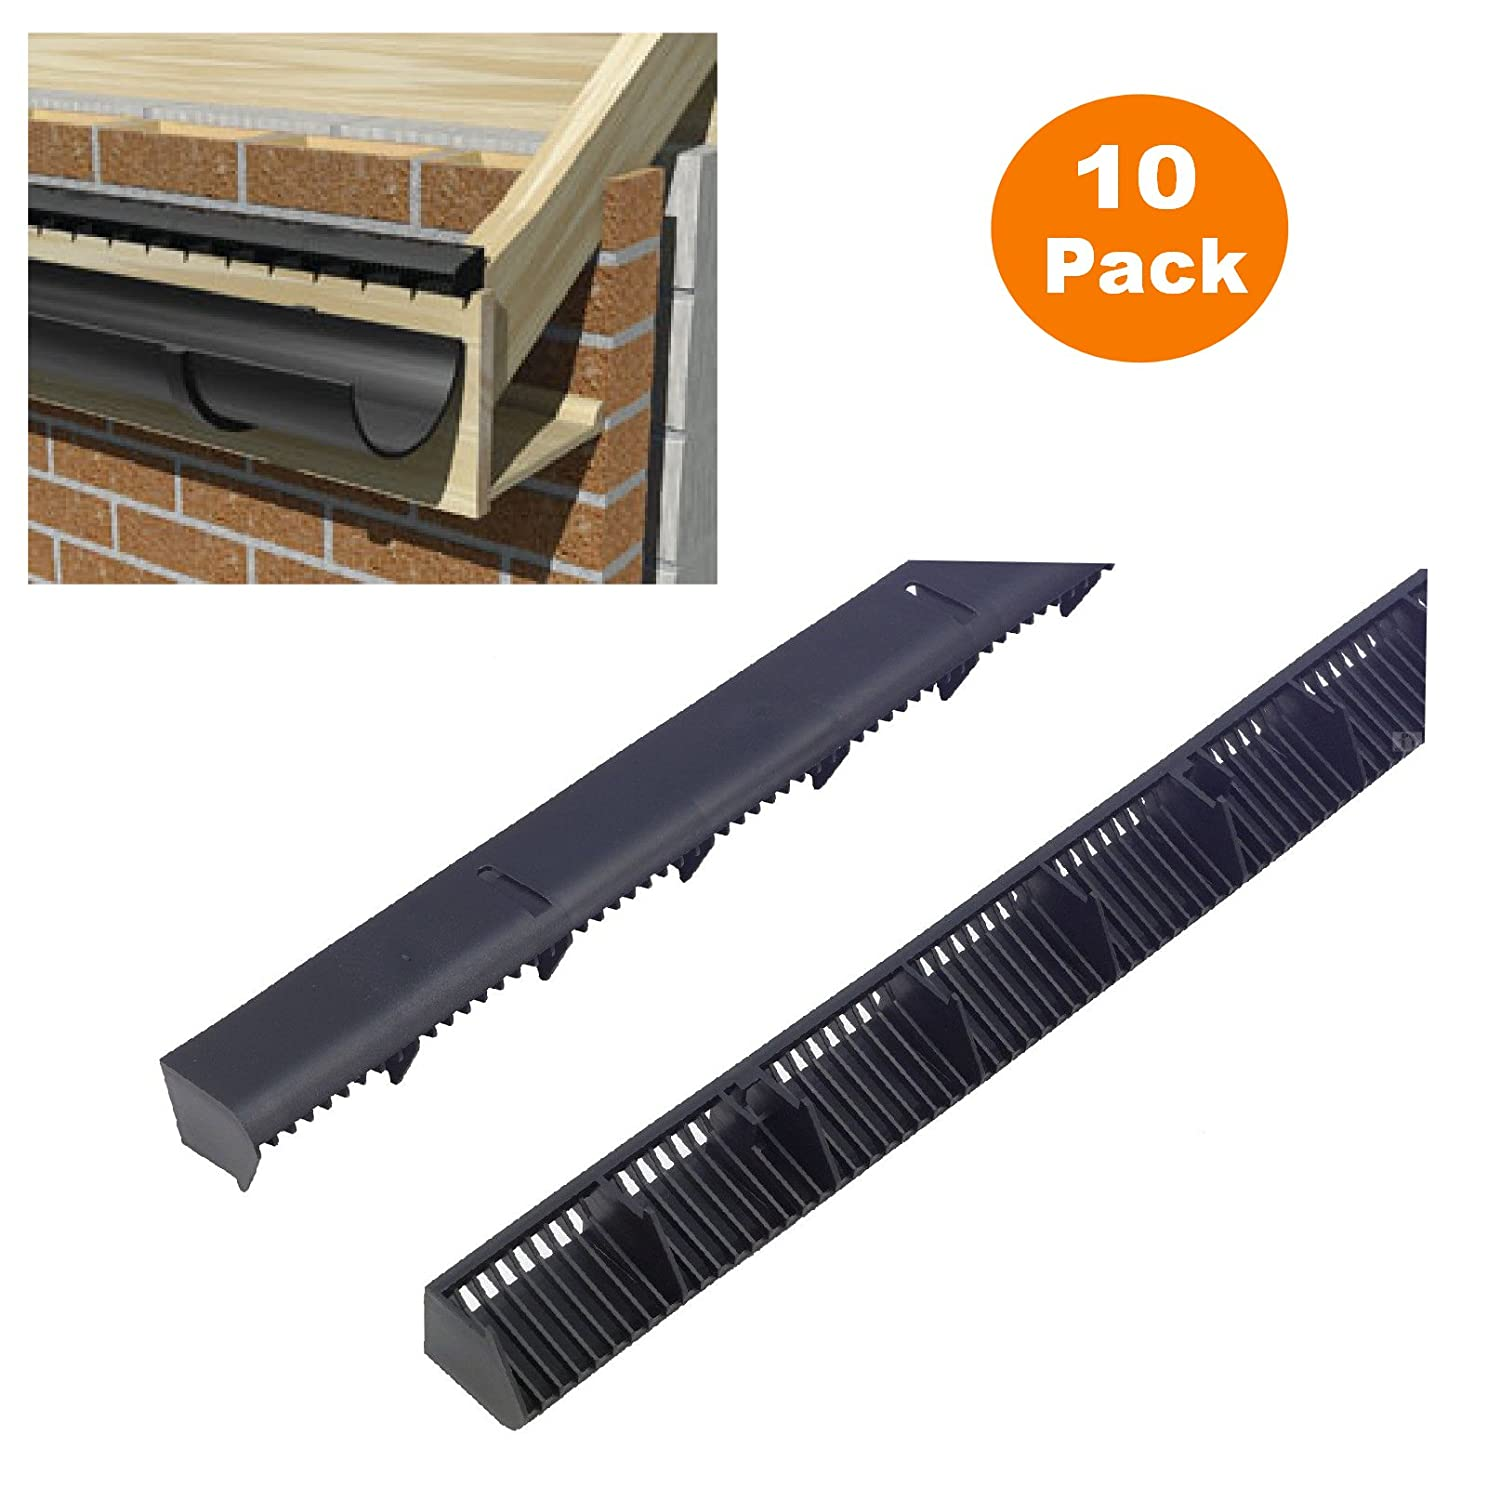 10 x 1 metre over fascia vents for roof eaves ventilation 10mm